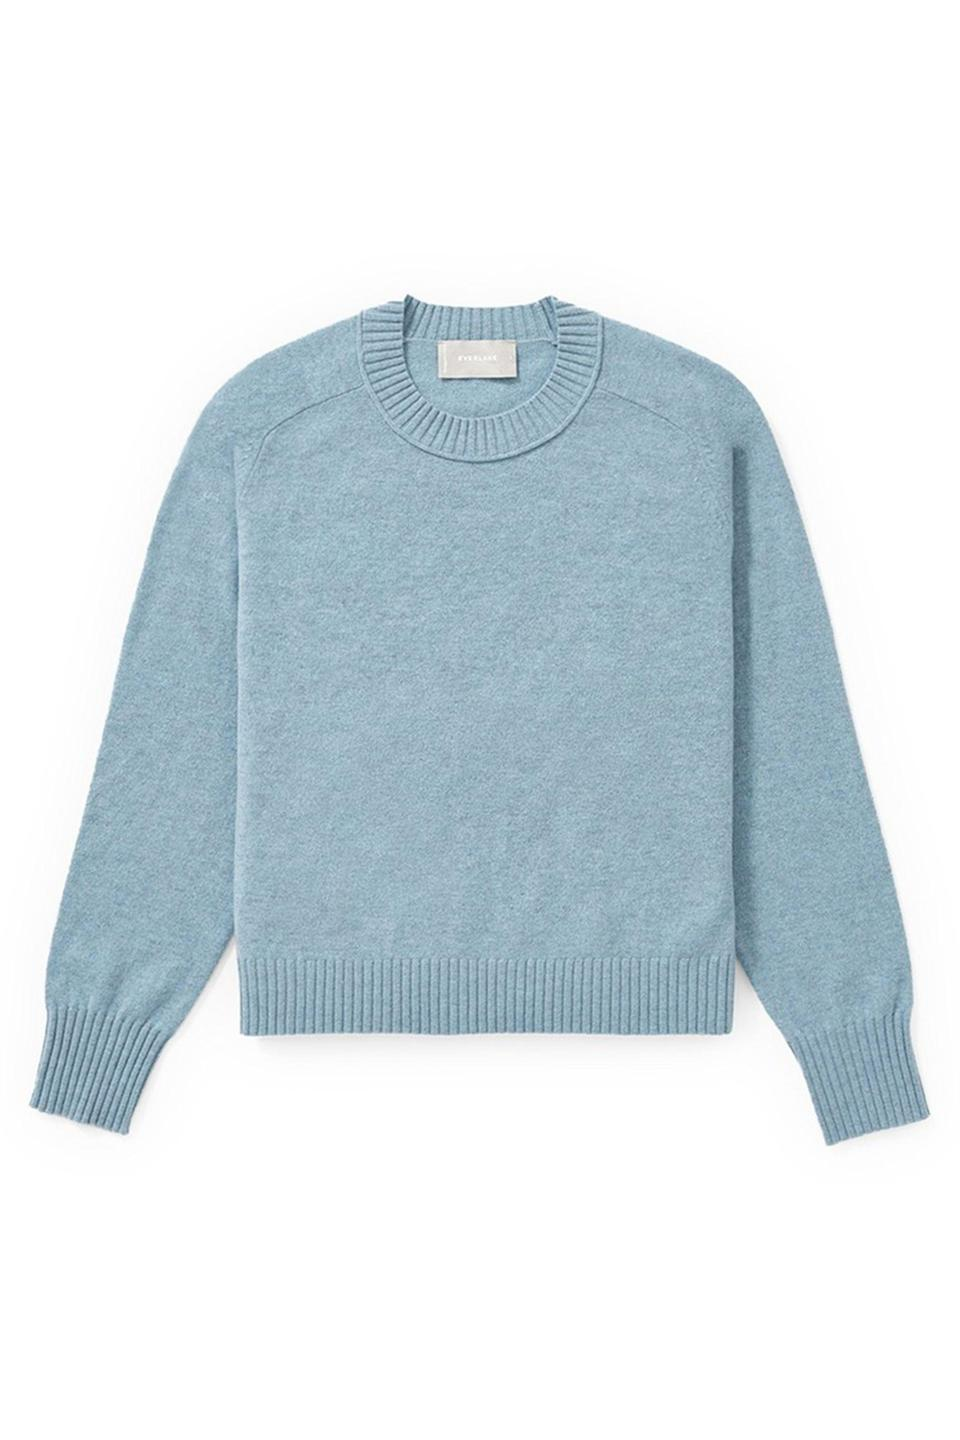 "<p><strong>Everlane</strong></p><p>nordstromrack.com</p><p><strong>$49.97</strong></p><p><a href=""https://go.redirectingat.com?id=74968X1596630&url=https%3A%2F%2Fwww.nordstromrack.com%2Fshop%2Fproduct%2F3236194&sref=https%3A%2F%2Fwww.elle.com%2Ffashion%2Fshopping%2Fg33468956%2Feverlane-nordstrom-rack-sale%2F"" rel=""nofollow noopener"" target=""_blank"" data-ylk=""slk:Shop Now"" class=""link rapid-noclick-resp"">Shop Now</a></p><p><strong><del>$95</del> $49.97 (47% off)</strong></p><p>Per this vintage-feeling crew neck's sweater's description, this is a classic crew neck with a little more attitude. As if that wasn't enough to make us fall in love, this sweater is made from premium Italian yarn that's been recycled for 50% less impact.</p>"